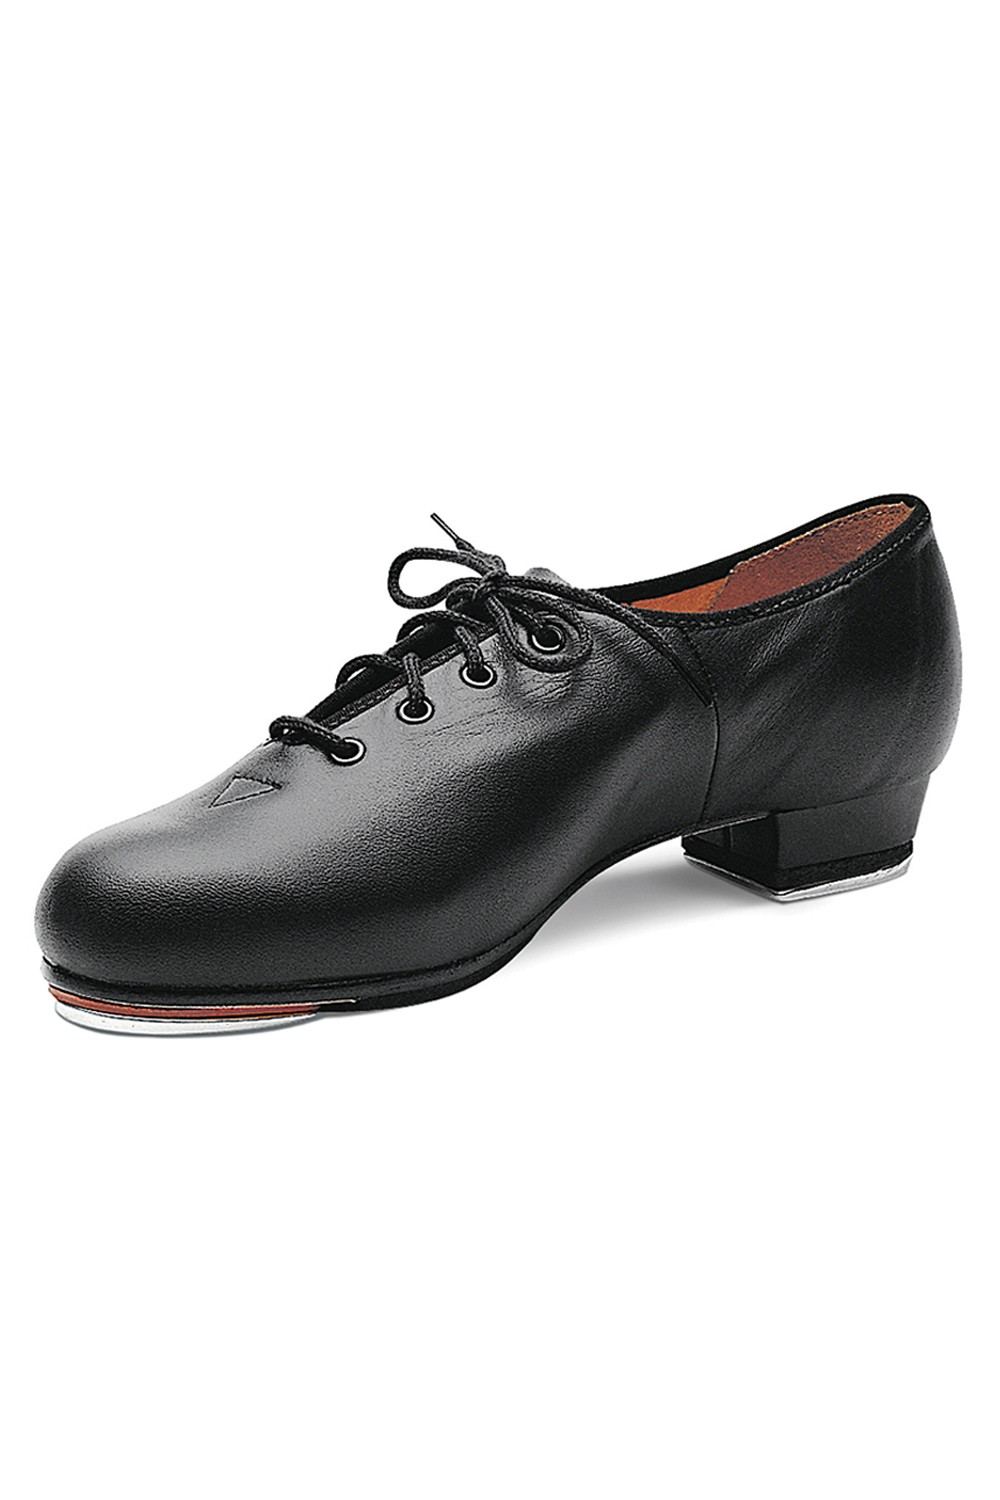 Jazz Tap - Mens Men's Tap Shoes